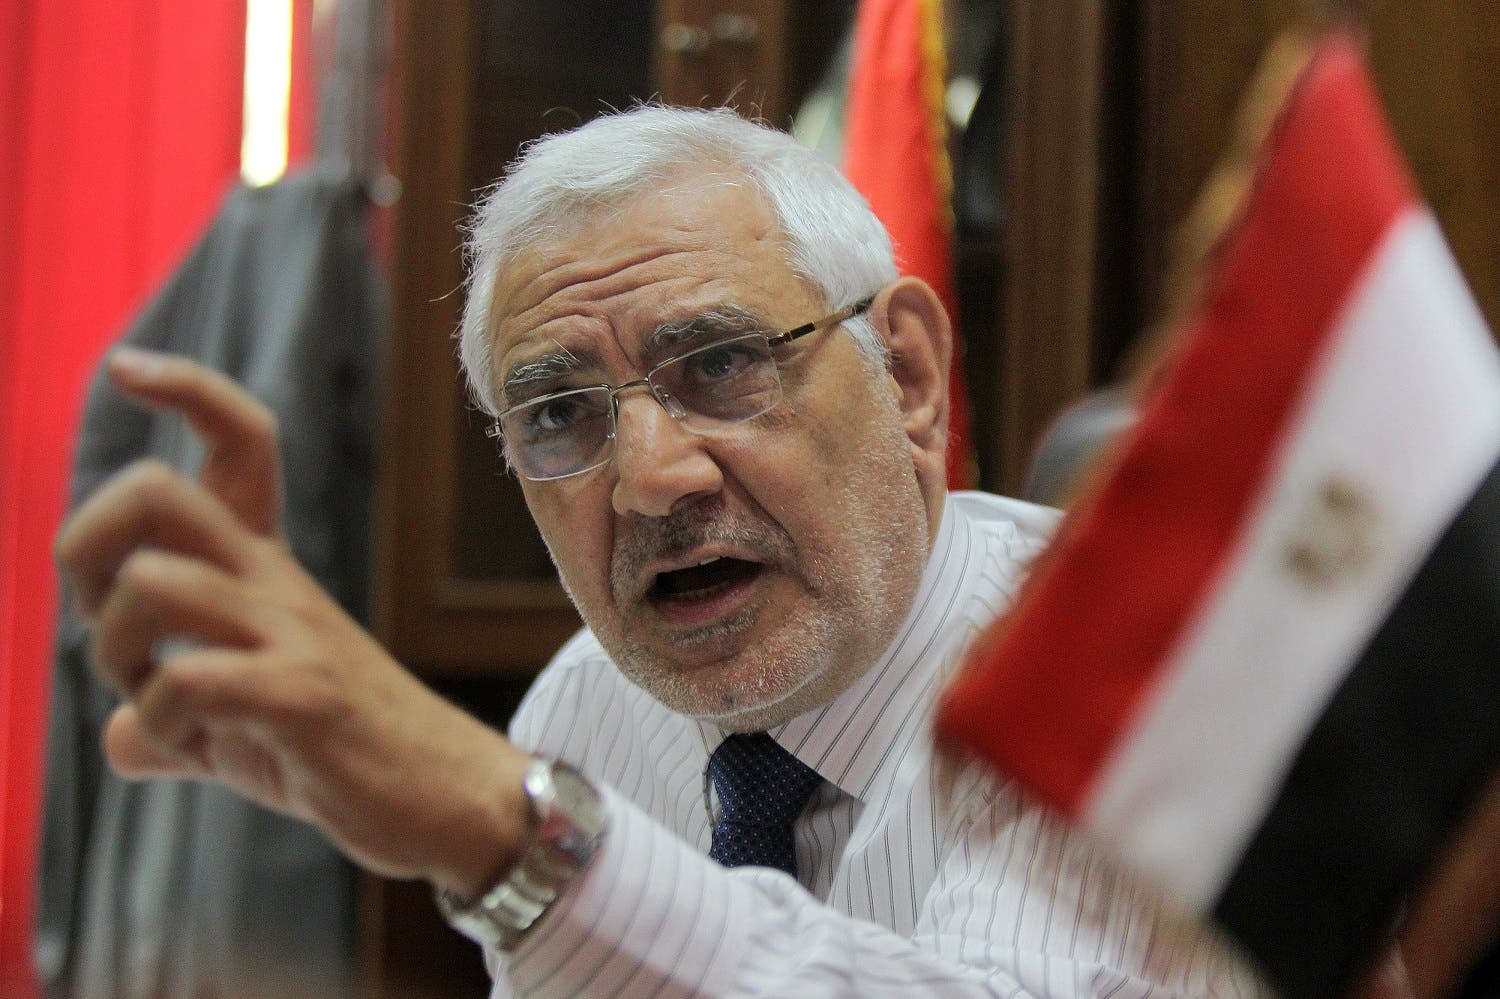 Abdel Moneim Abul Fotouh speaks during an interview with AFP at his office in Cairo on May 25, 2011. (AFP)